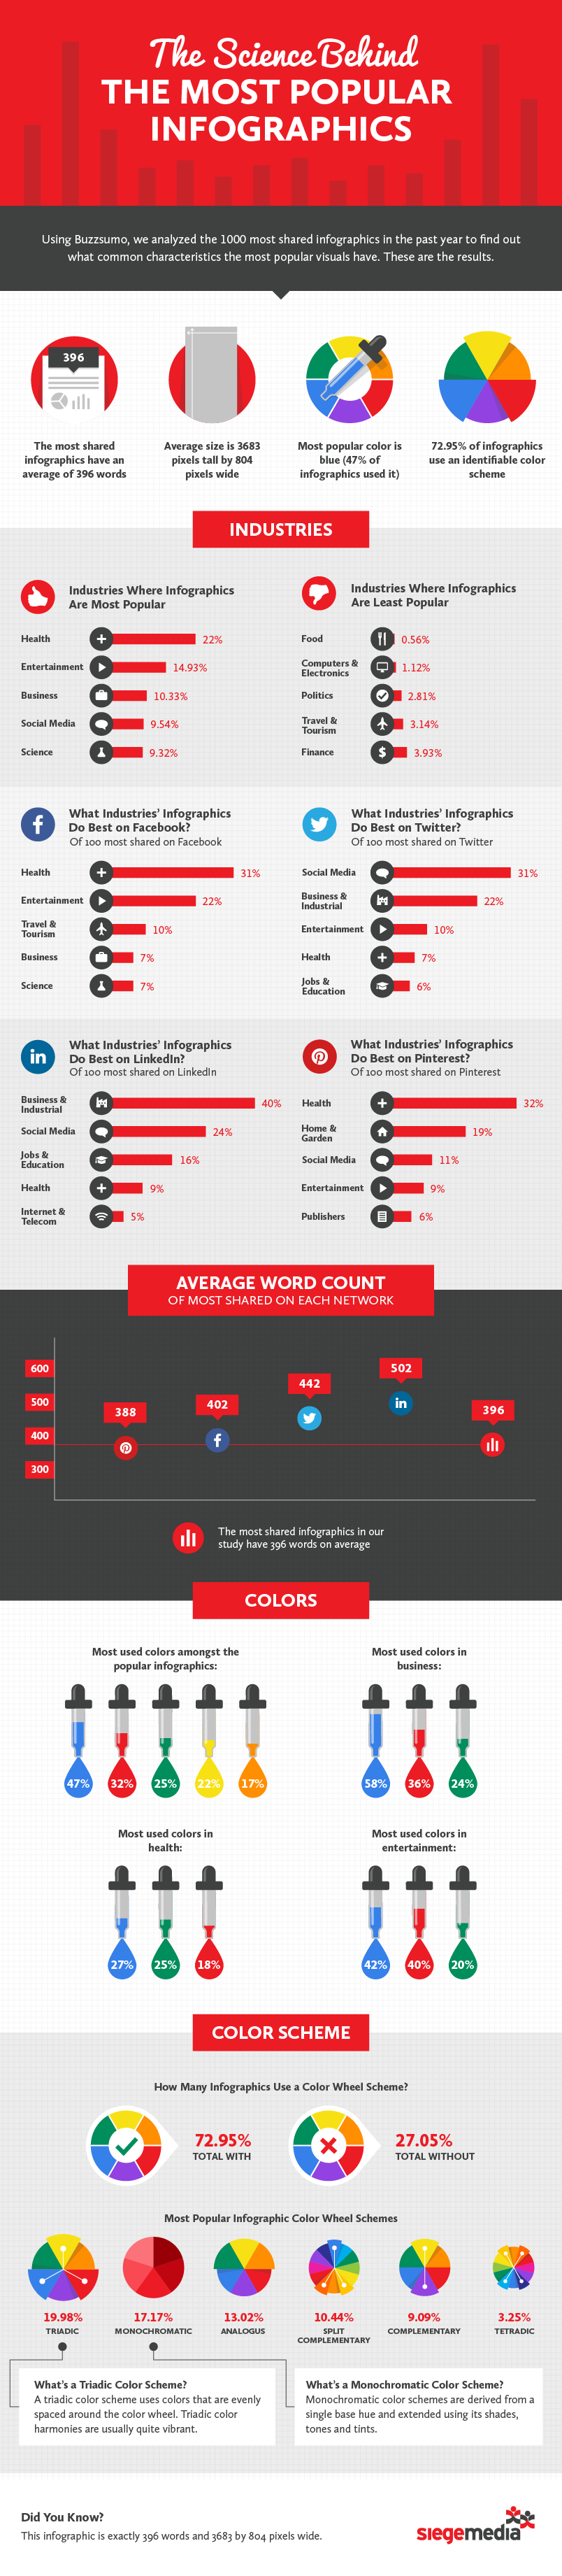 The Science Behind The Most Popular Infographics